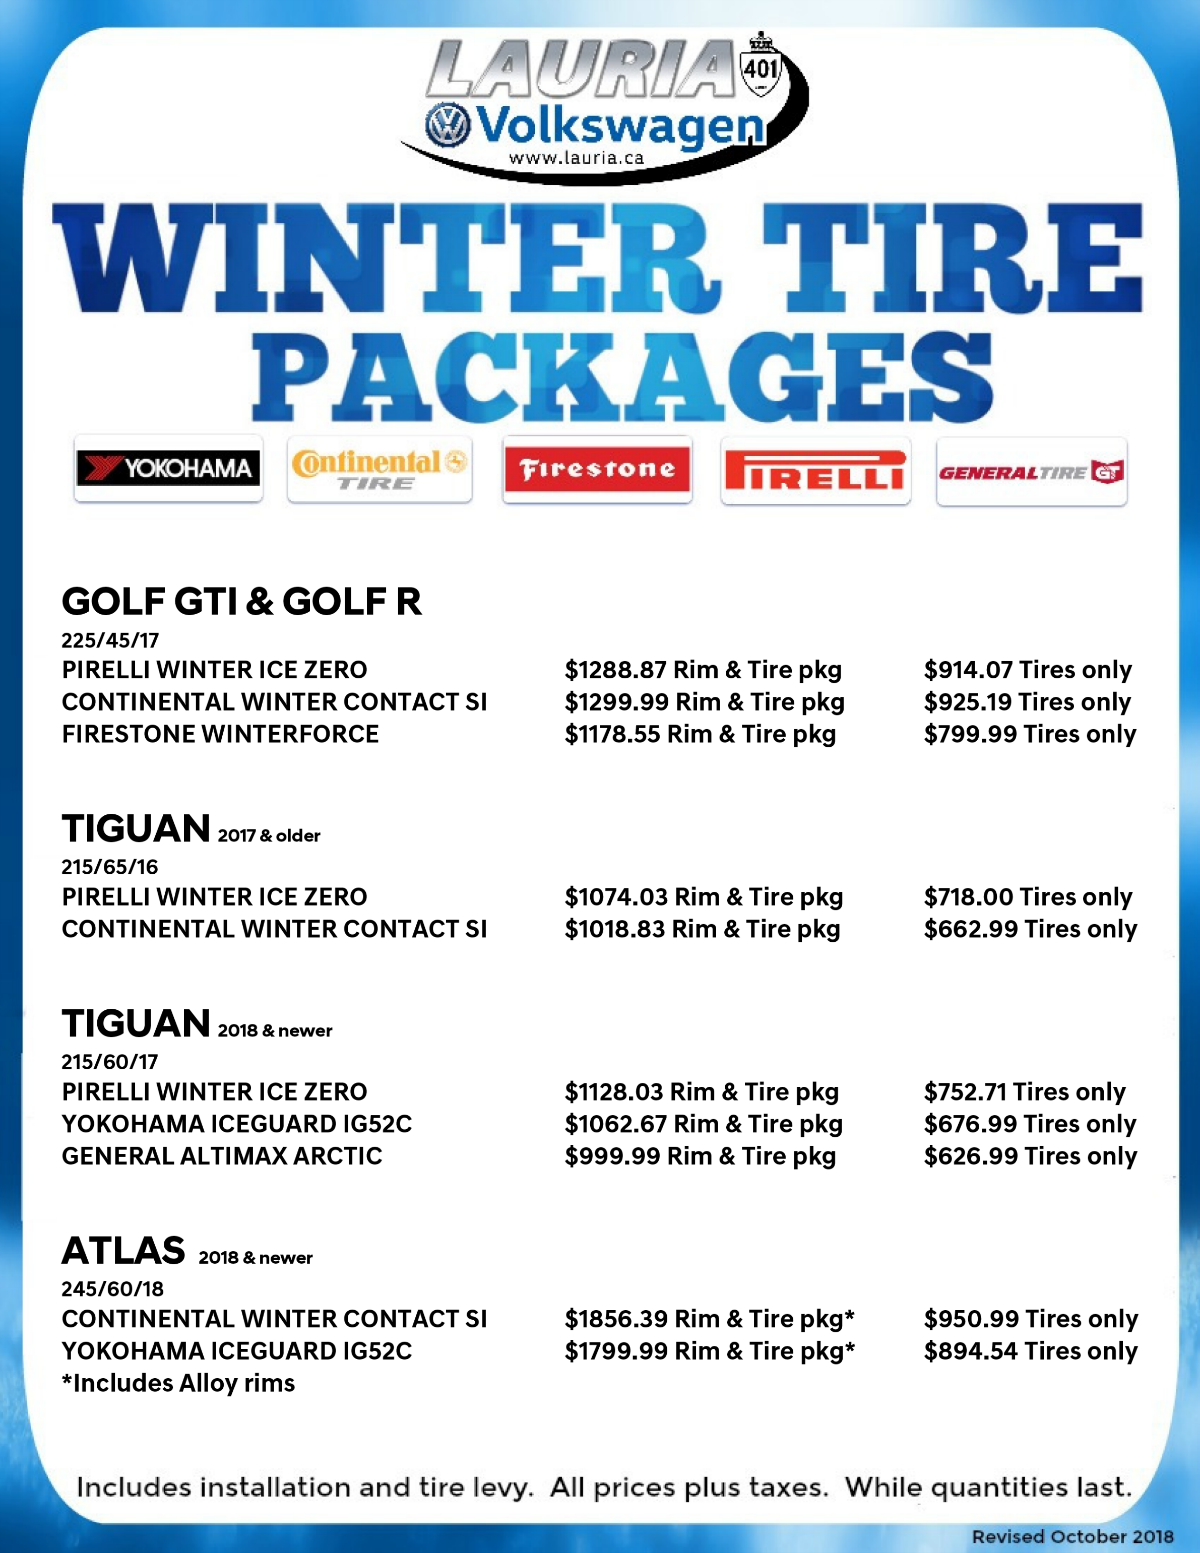 Snow Tire packages for Volkswagen Golf, Tiguan and VW Atlas Winter Tire packages